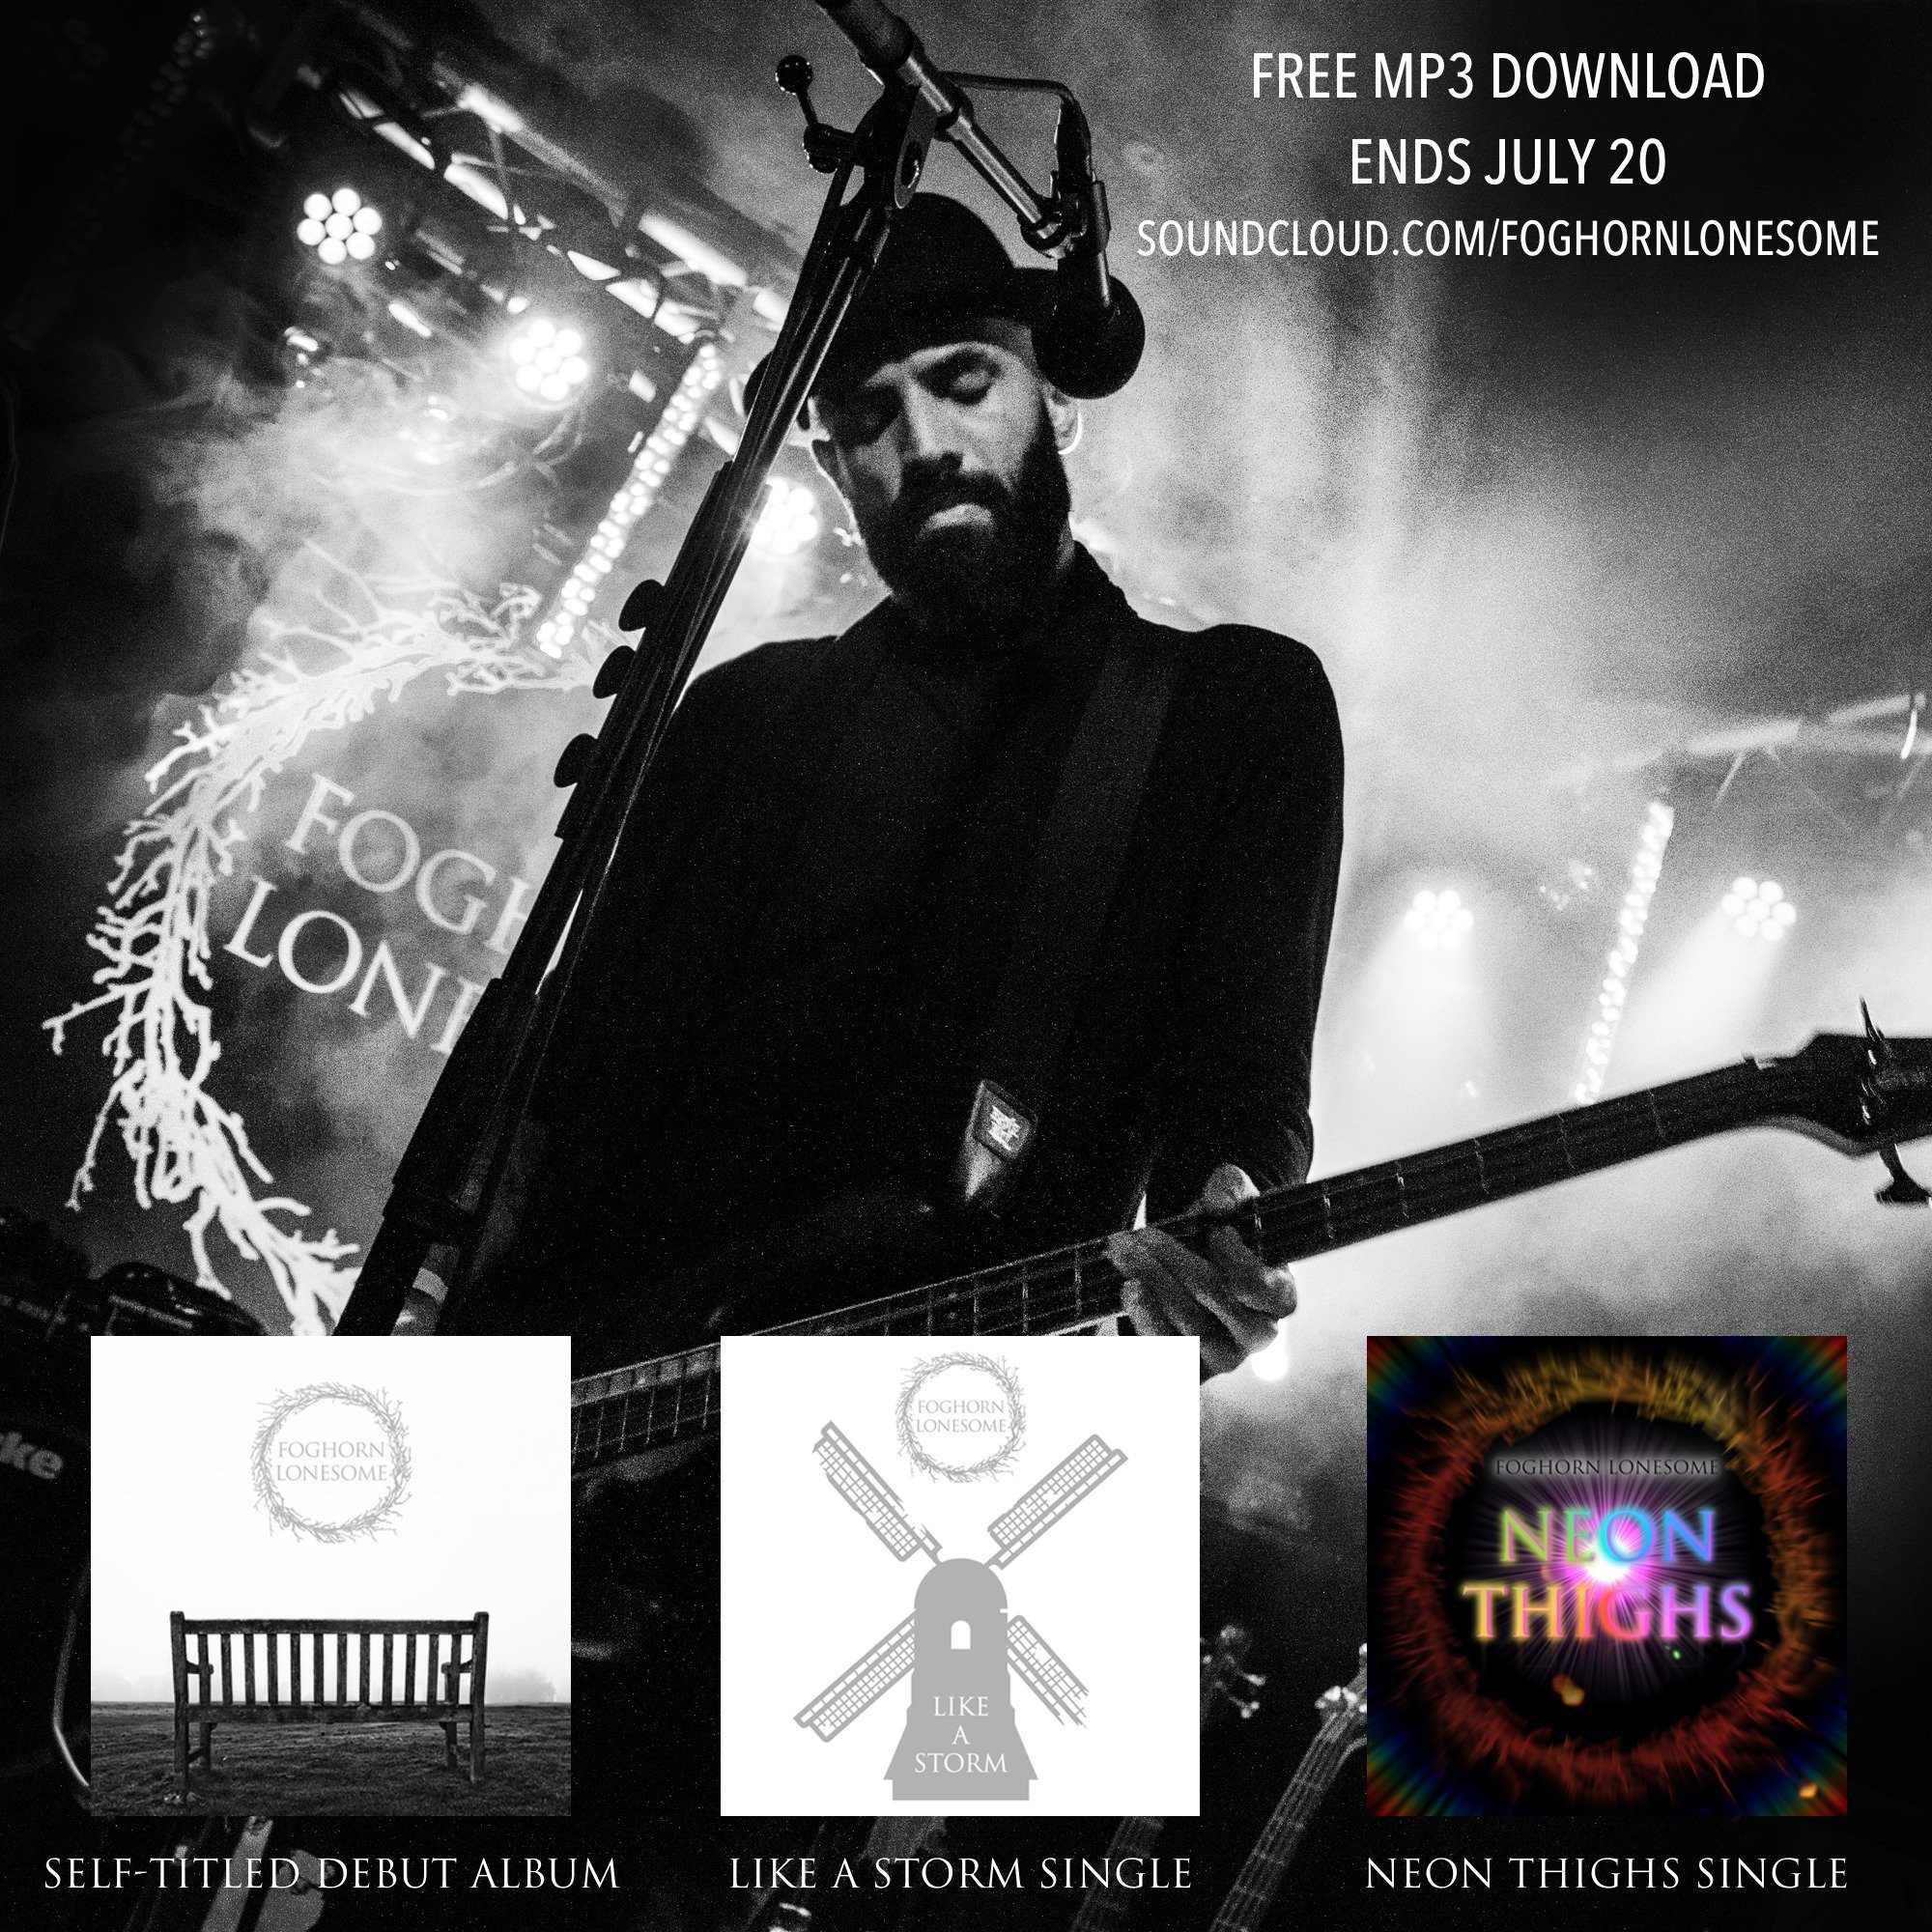 Free mp3 download. Ends june 5. Foghorn lonesome | facebook.